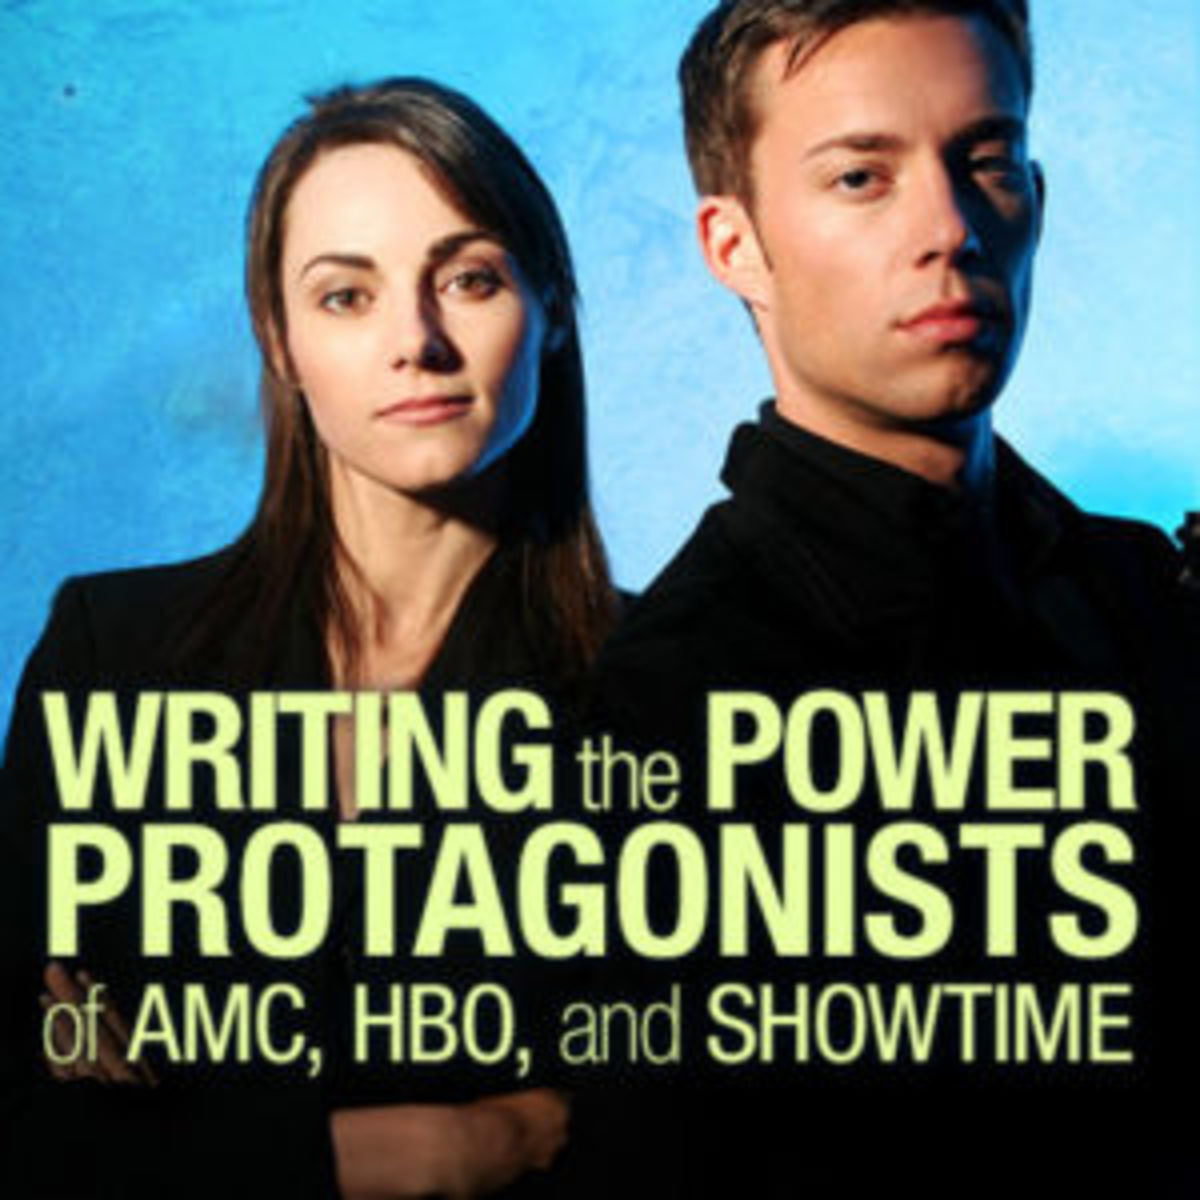 Writing the Power Protagonists of AMC, HBO, and SHOWTIME